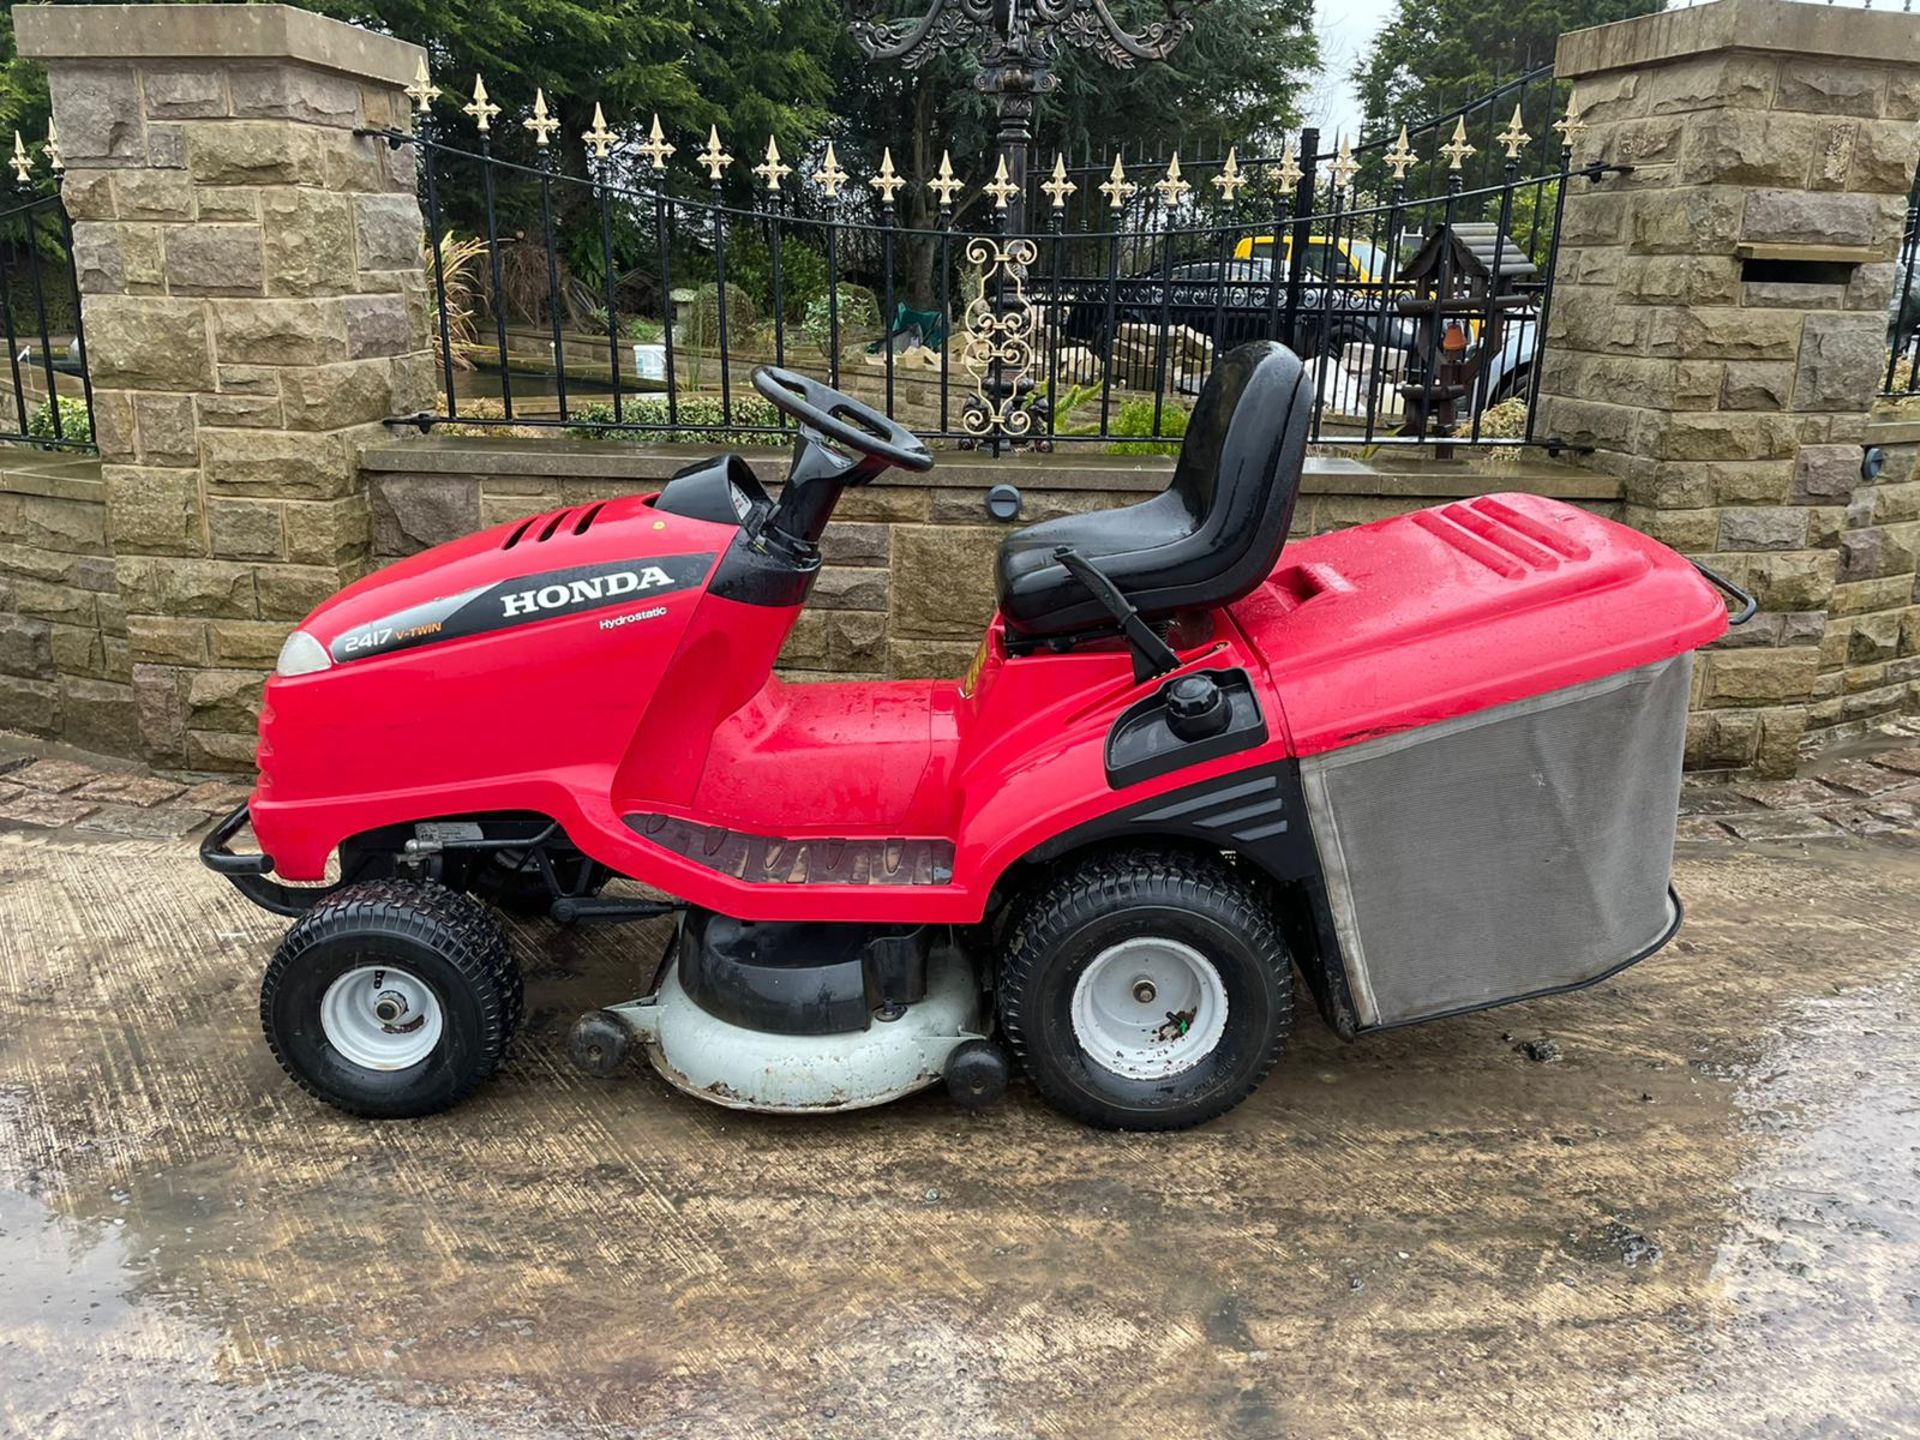 HONDA 2417 V TWIN RIDE ON MOWER, RUNS, DRIVES AND CUTS, ELECTRIC COLLECTOR, CLEAN MACHINE *NO VAT* - Image 2 of 5